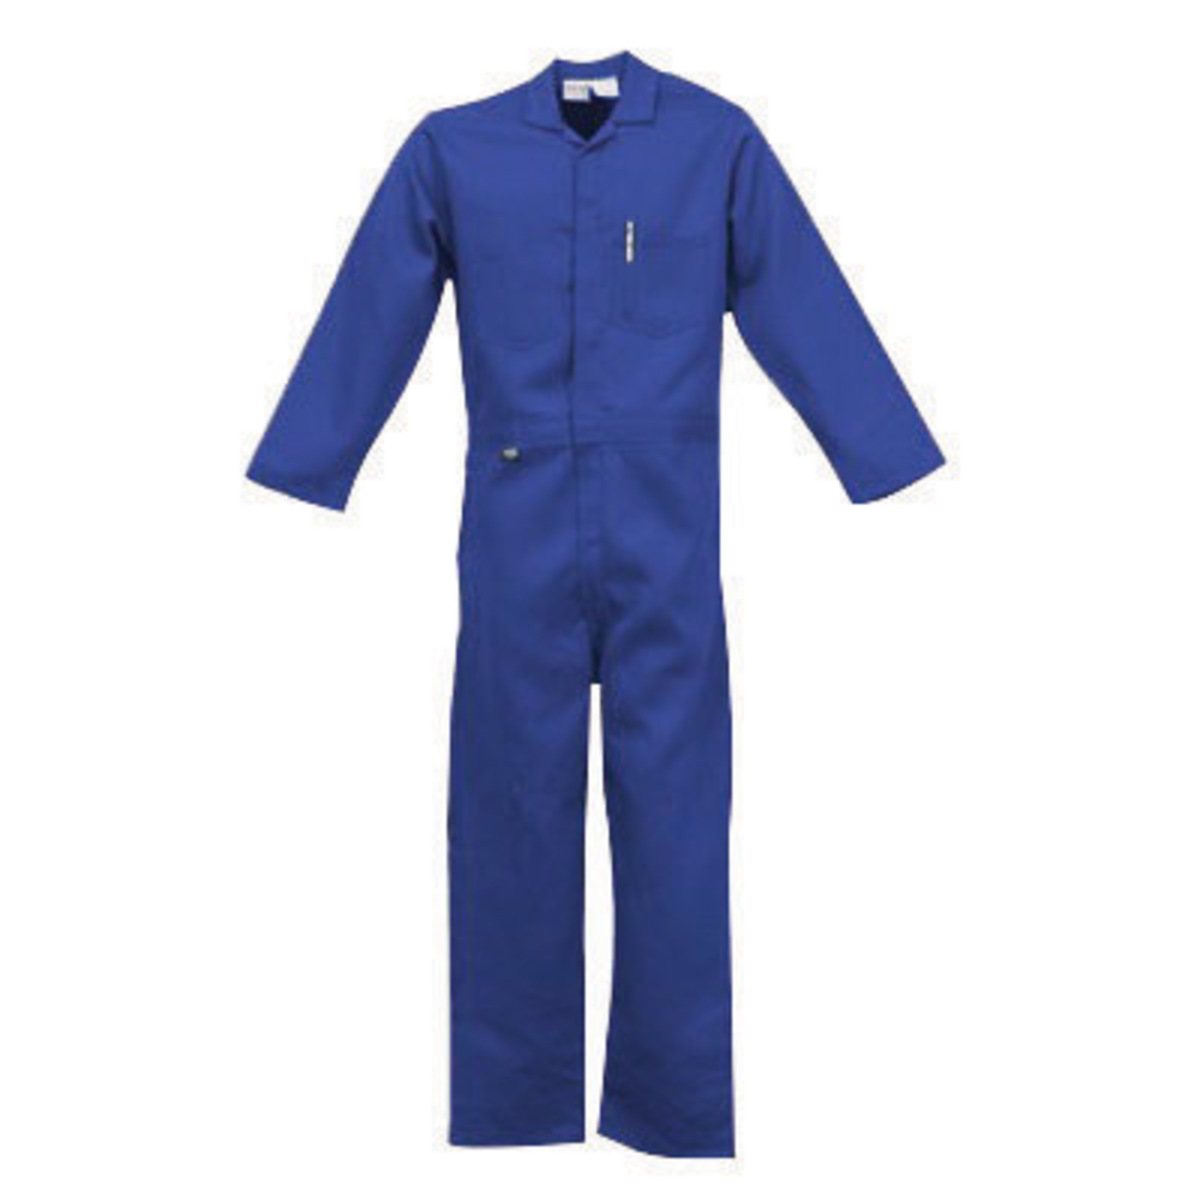 b65b83ed56a7 Stanco Safety Products™ 6X Navy Blue Nomex® IIIA Arc Rated Flame Resistant  Coveralls With